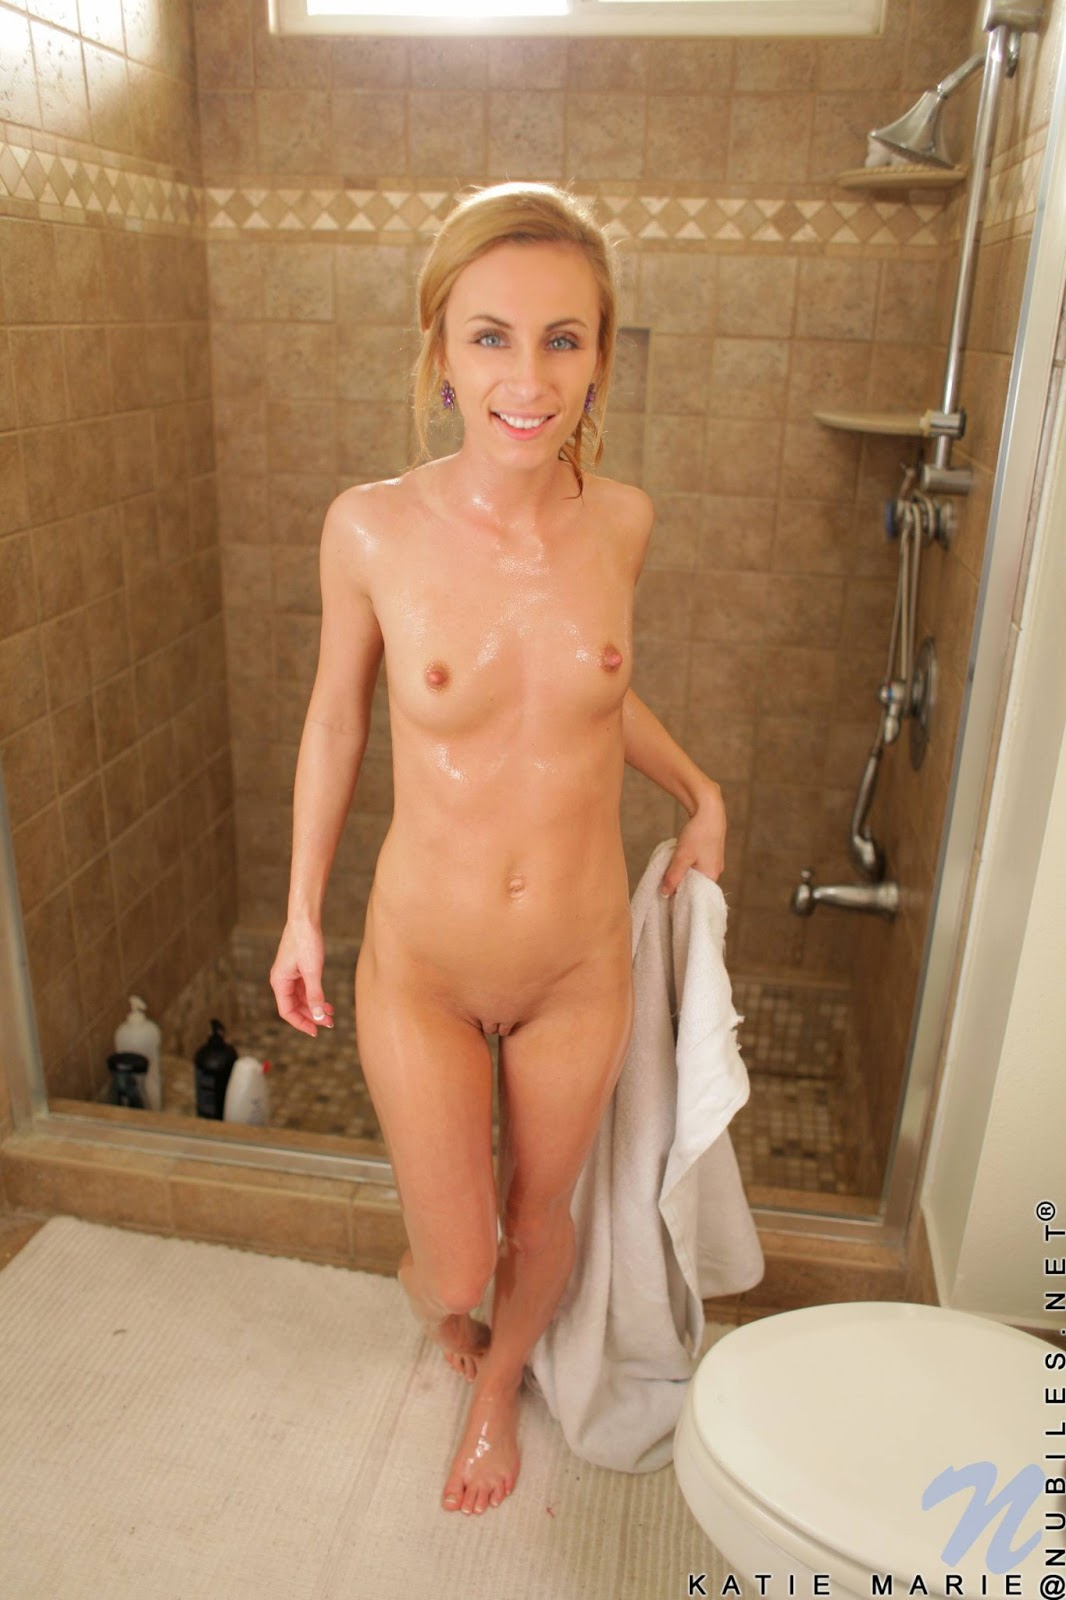 www.CelebTiger.com+Katie+Marie+In+Red+Dress+Shows+Her+Wet+Perky+Nipples+ 031VDM227 Katie Marie Wet And Horny In Her Red Bath Robe HQ Nude Photo Gallery